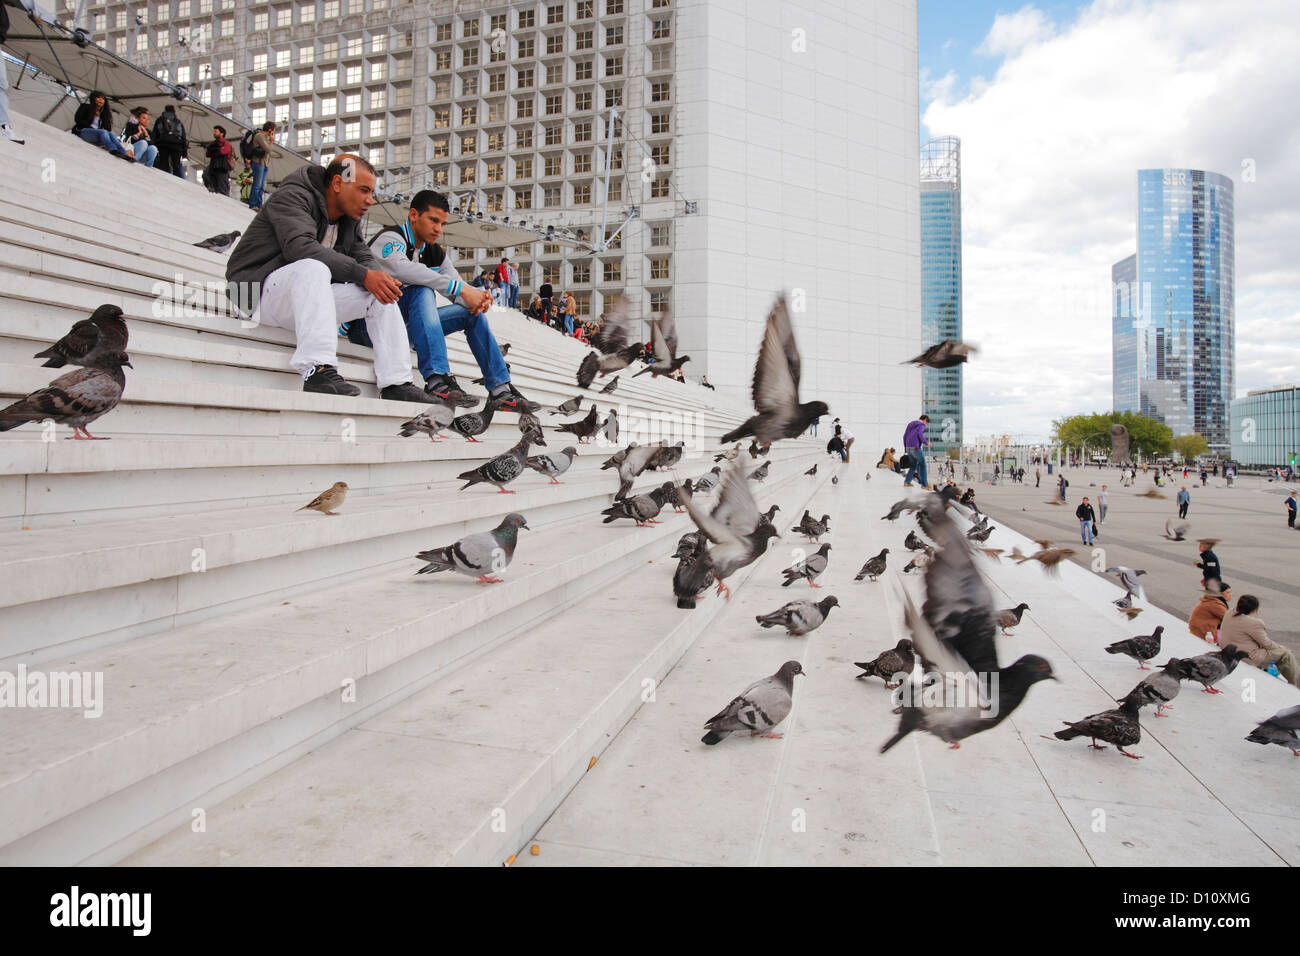 two men talking on stairs of La Grande Arche in Paris - Stock Image